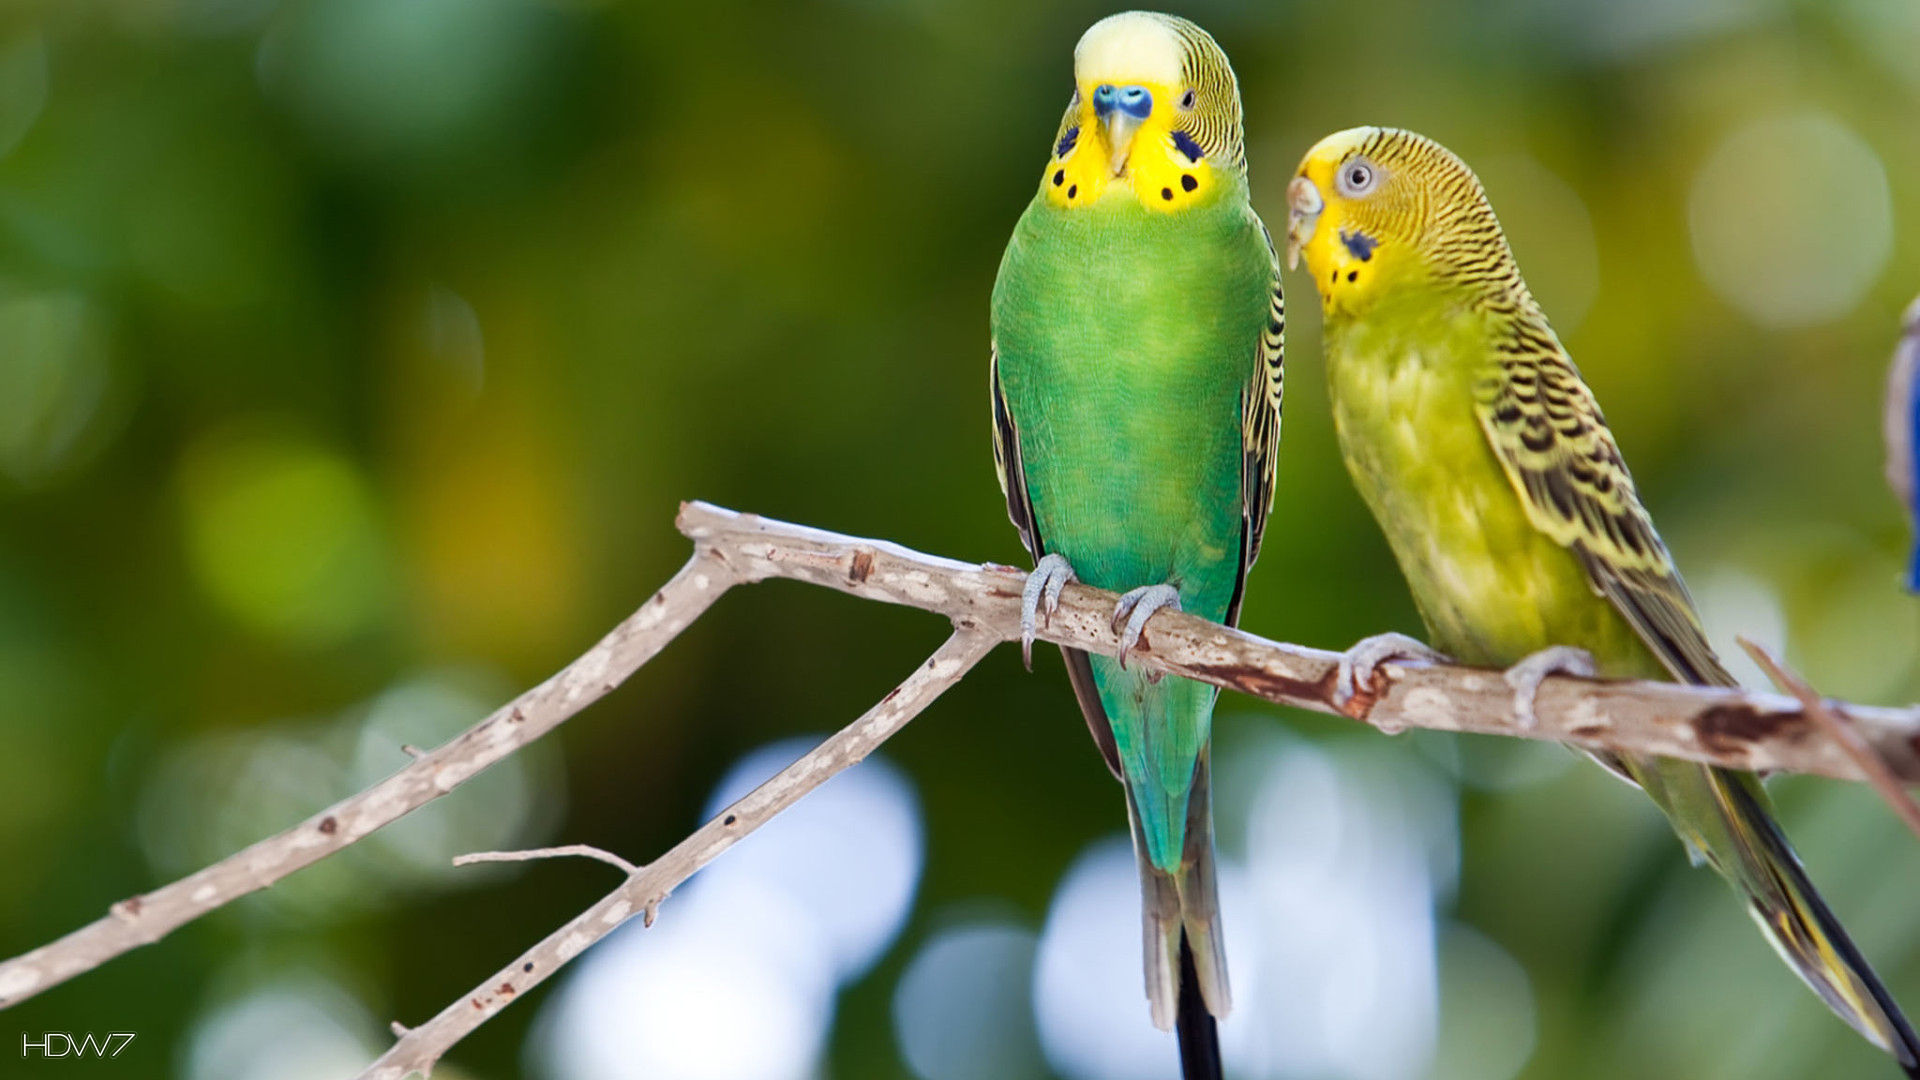 budgie two green budgerigars birds sitting